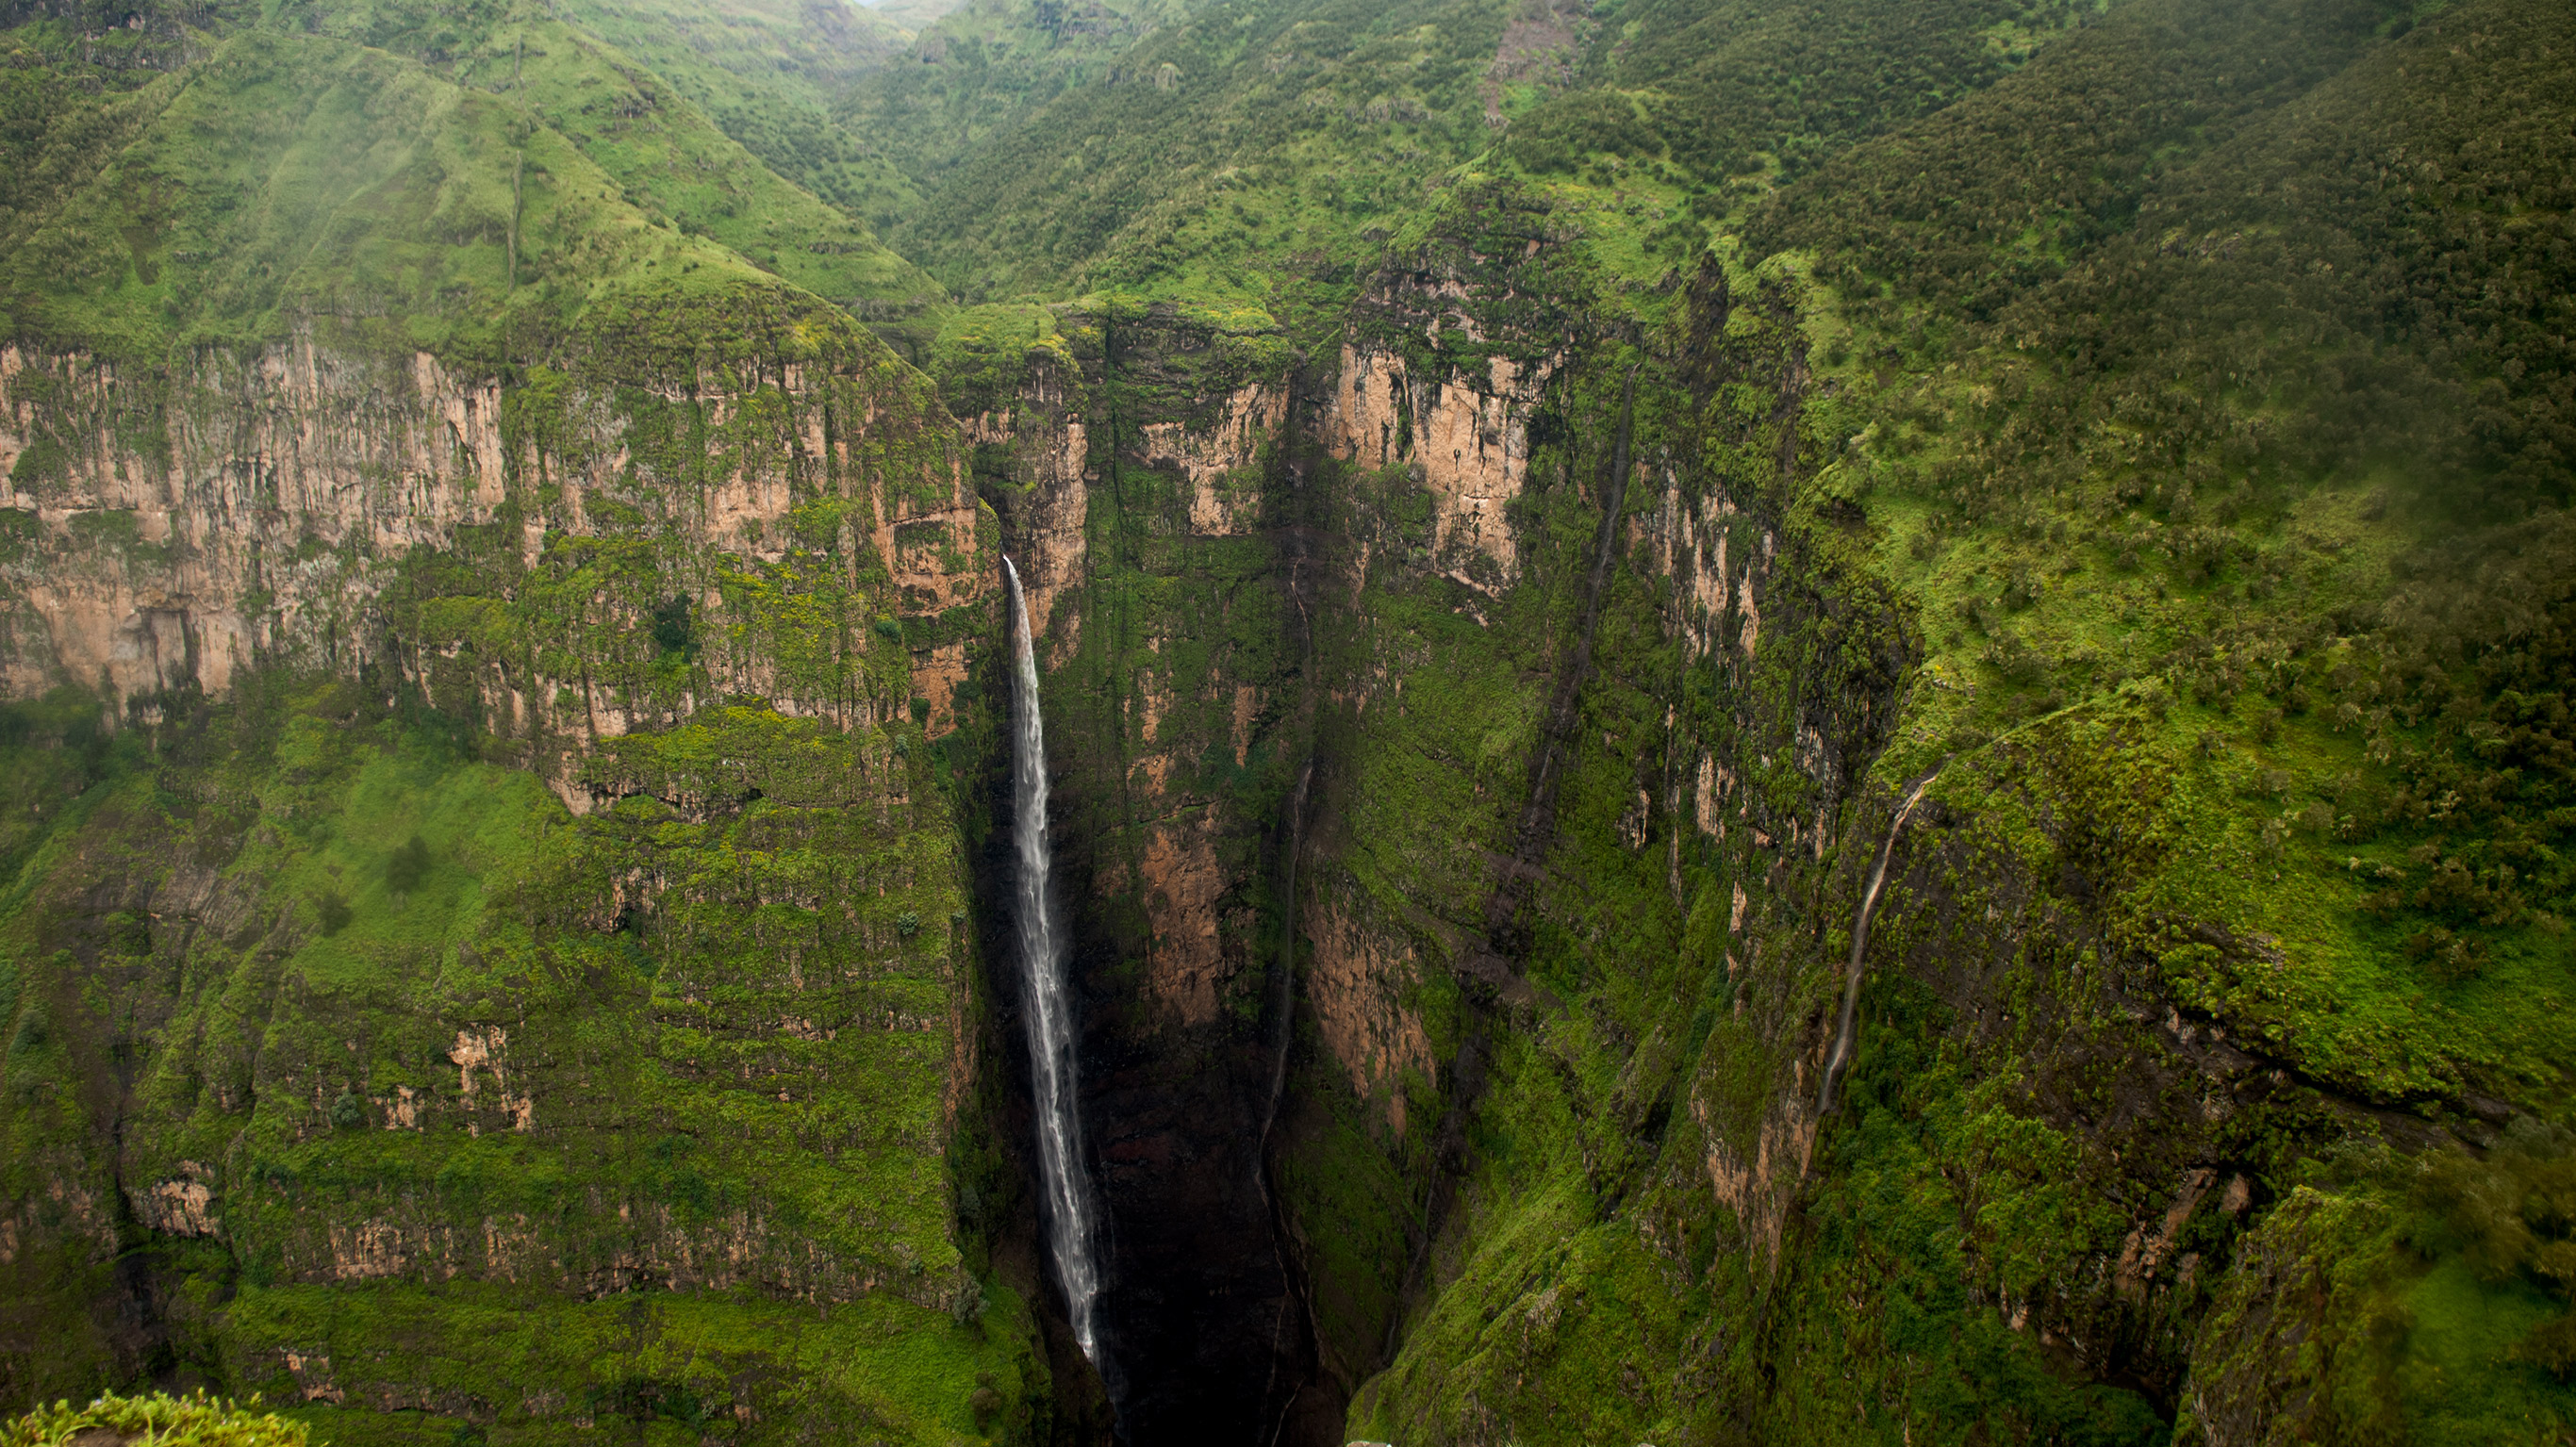 Ethiopia Simien NP Mountains Waterfall IS 24150408 Or RGBfeature